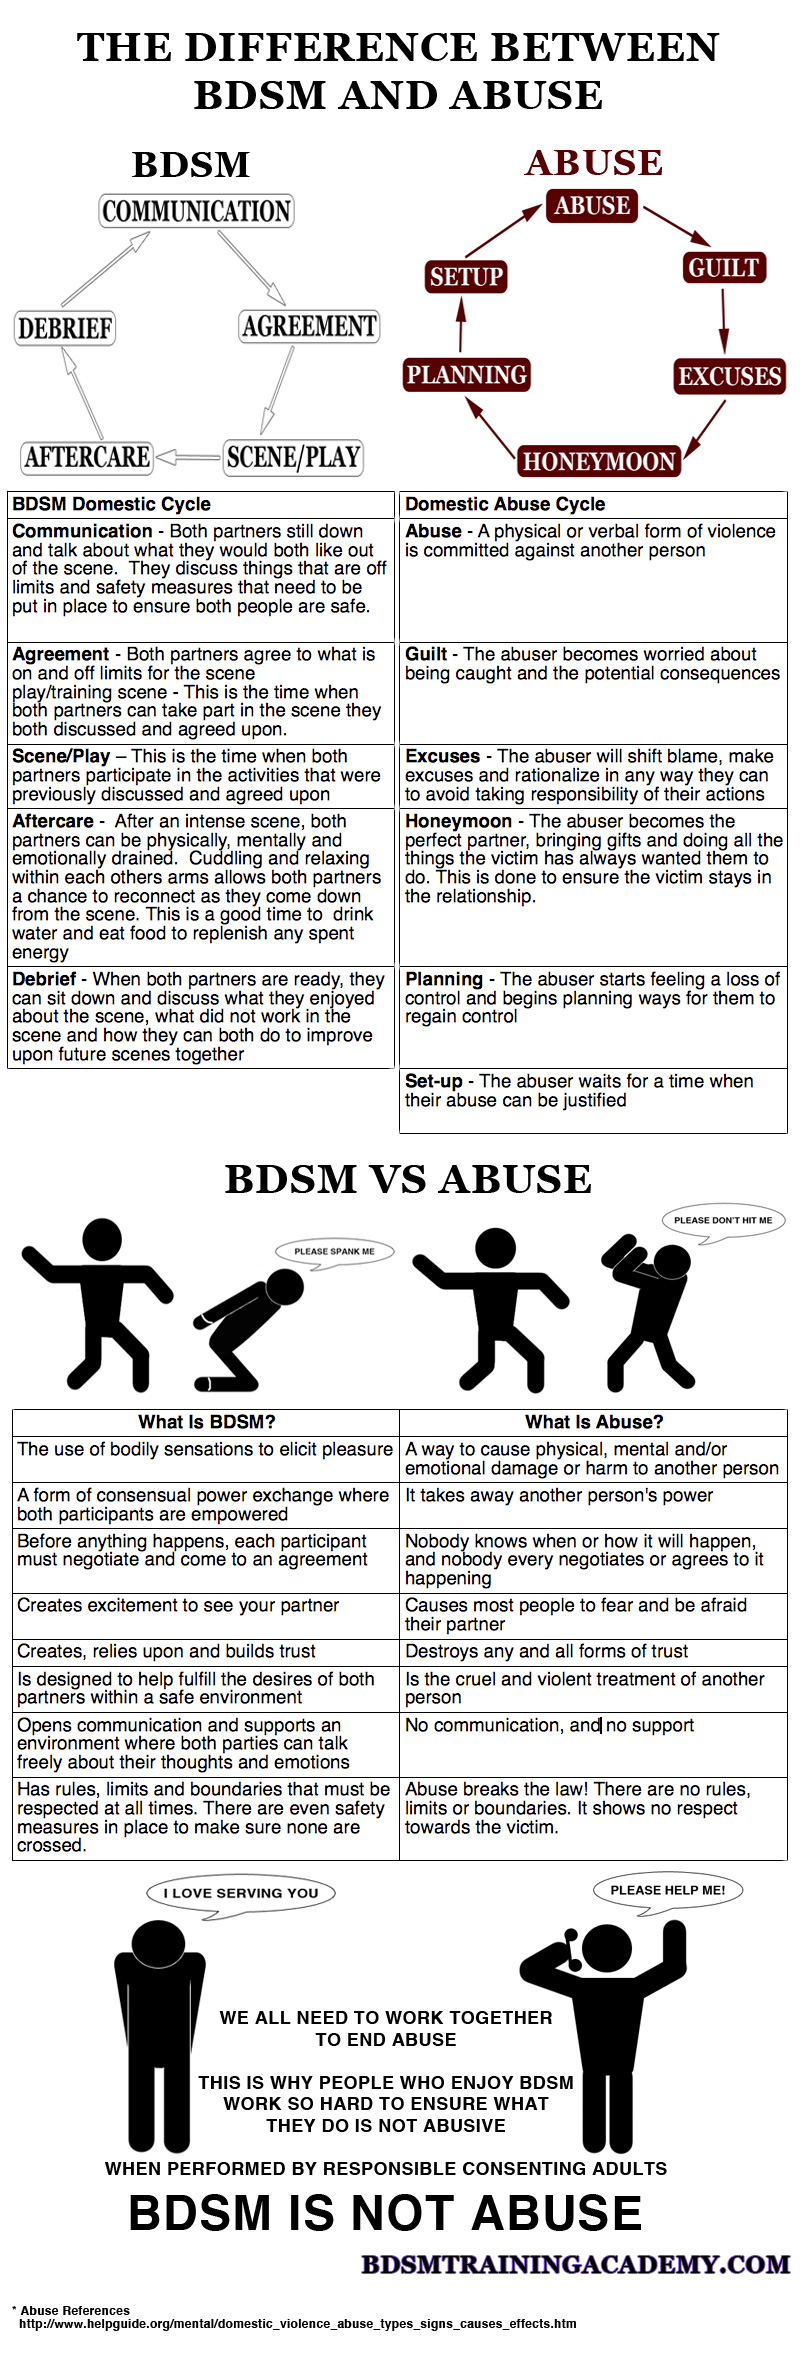 The difference between BDSM and abuse